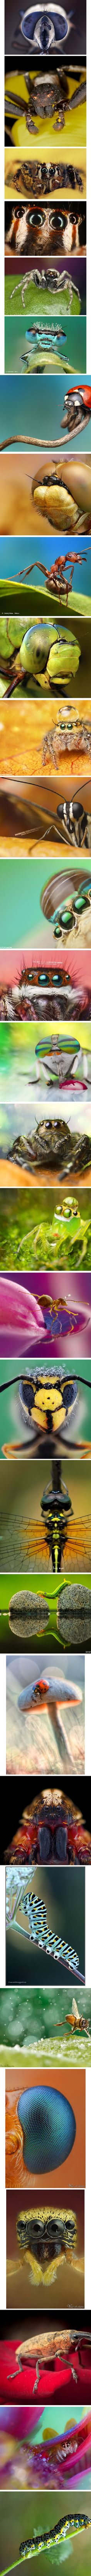 Macro Photography from 500px.com